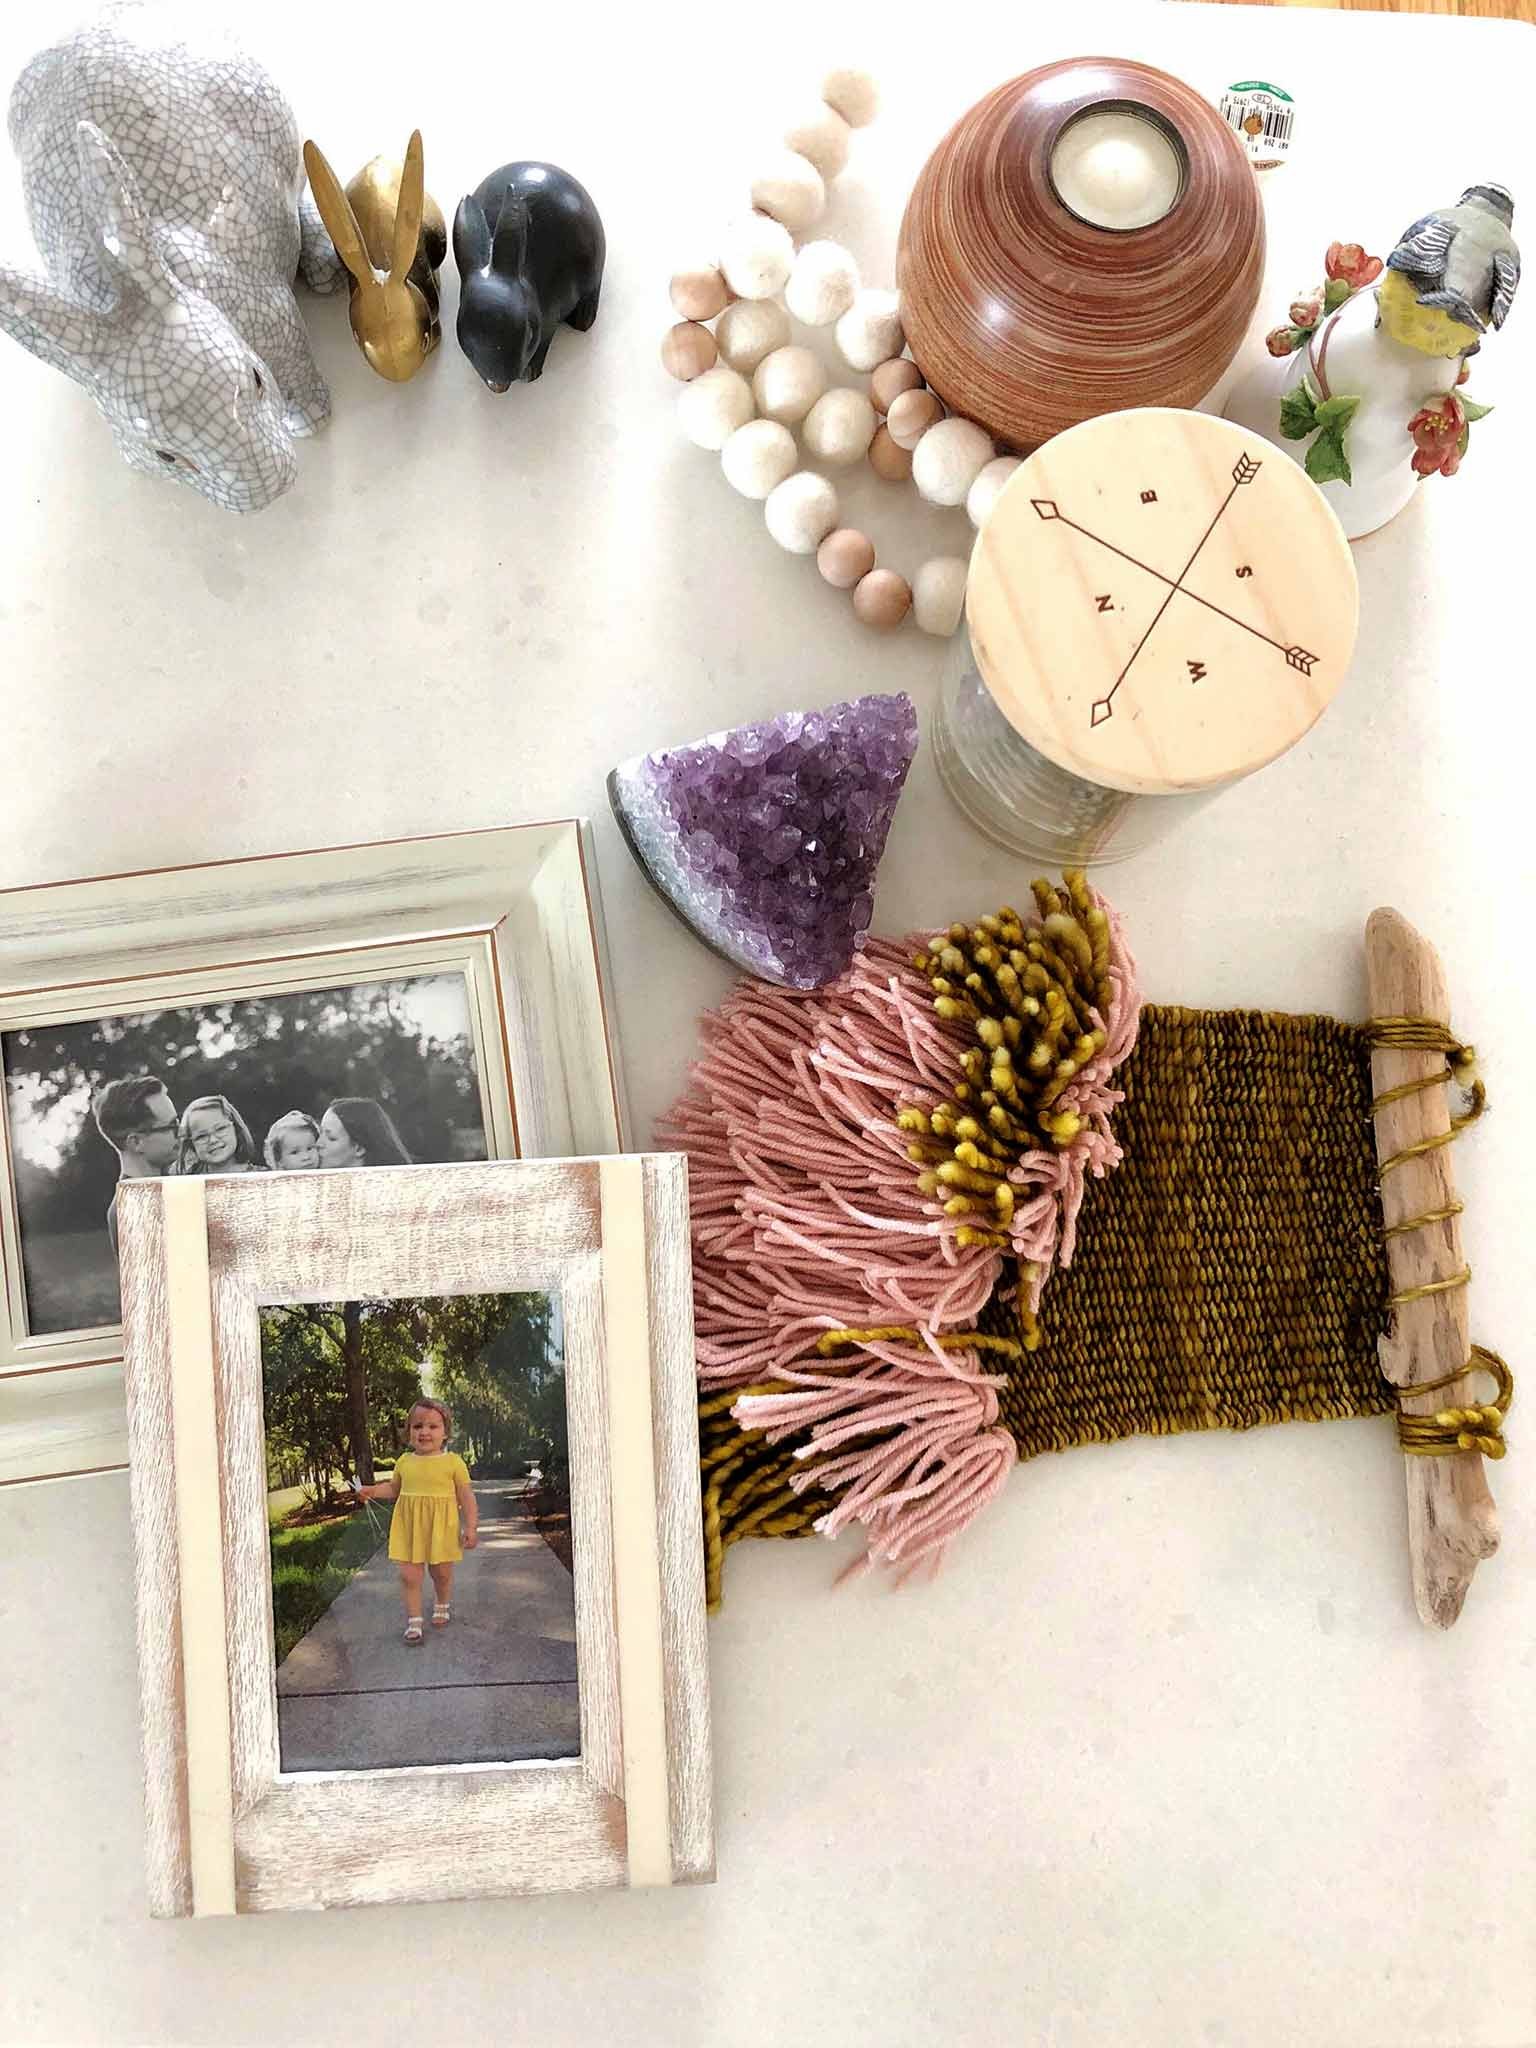 Decluttering to make space for fall decor - Simple Fall Decor for the Uncluttered Home - That Homebird Life blog